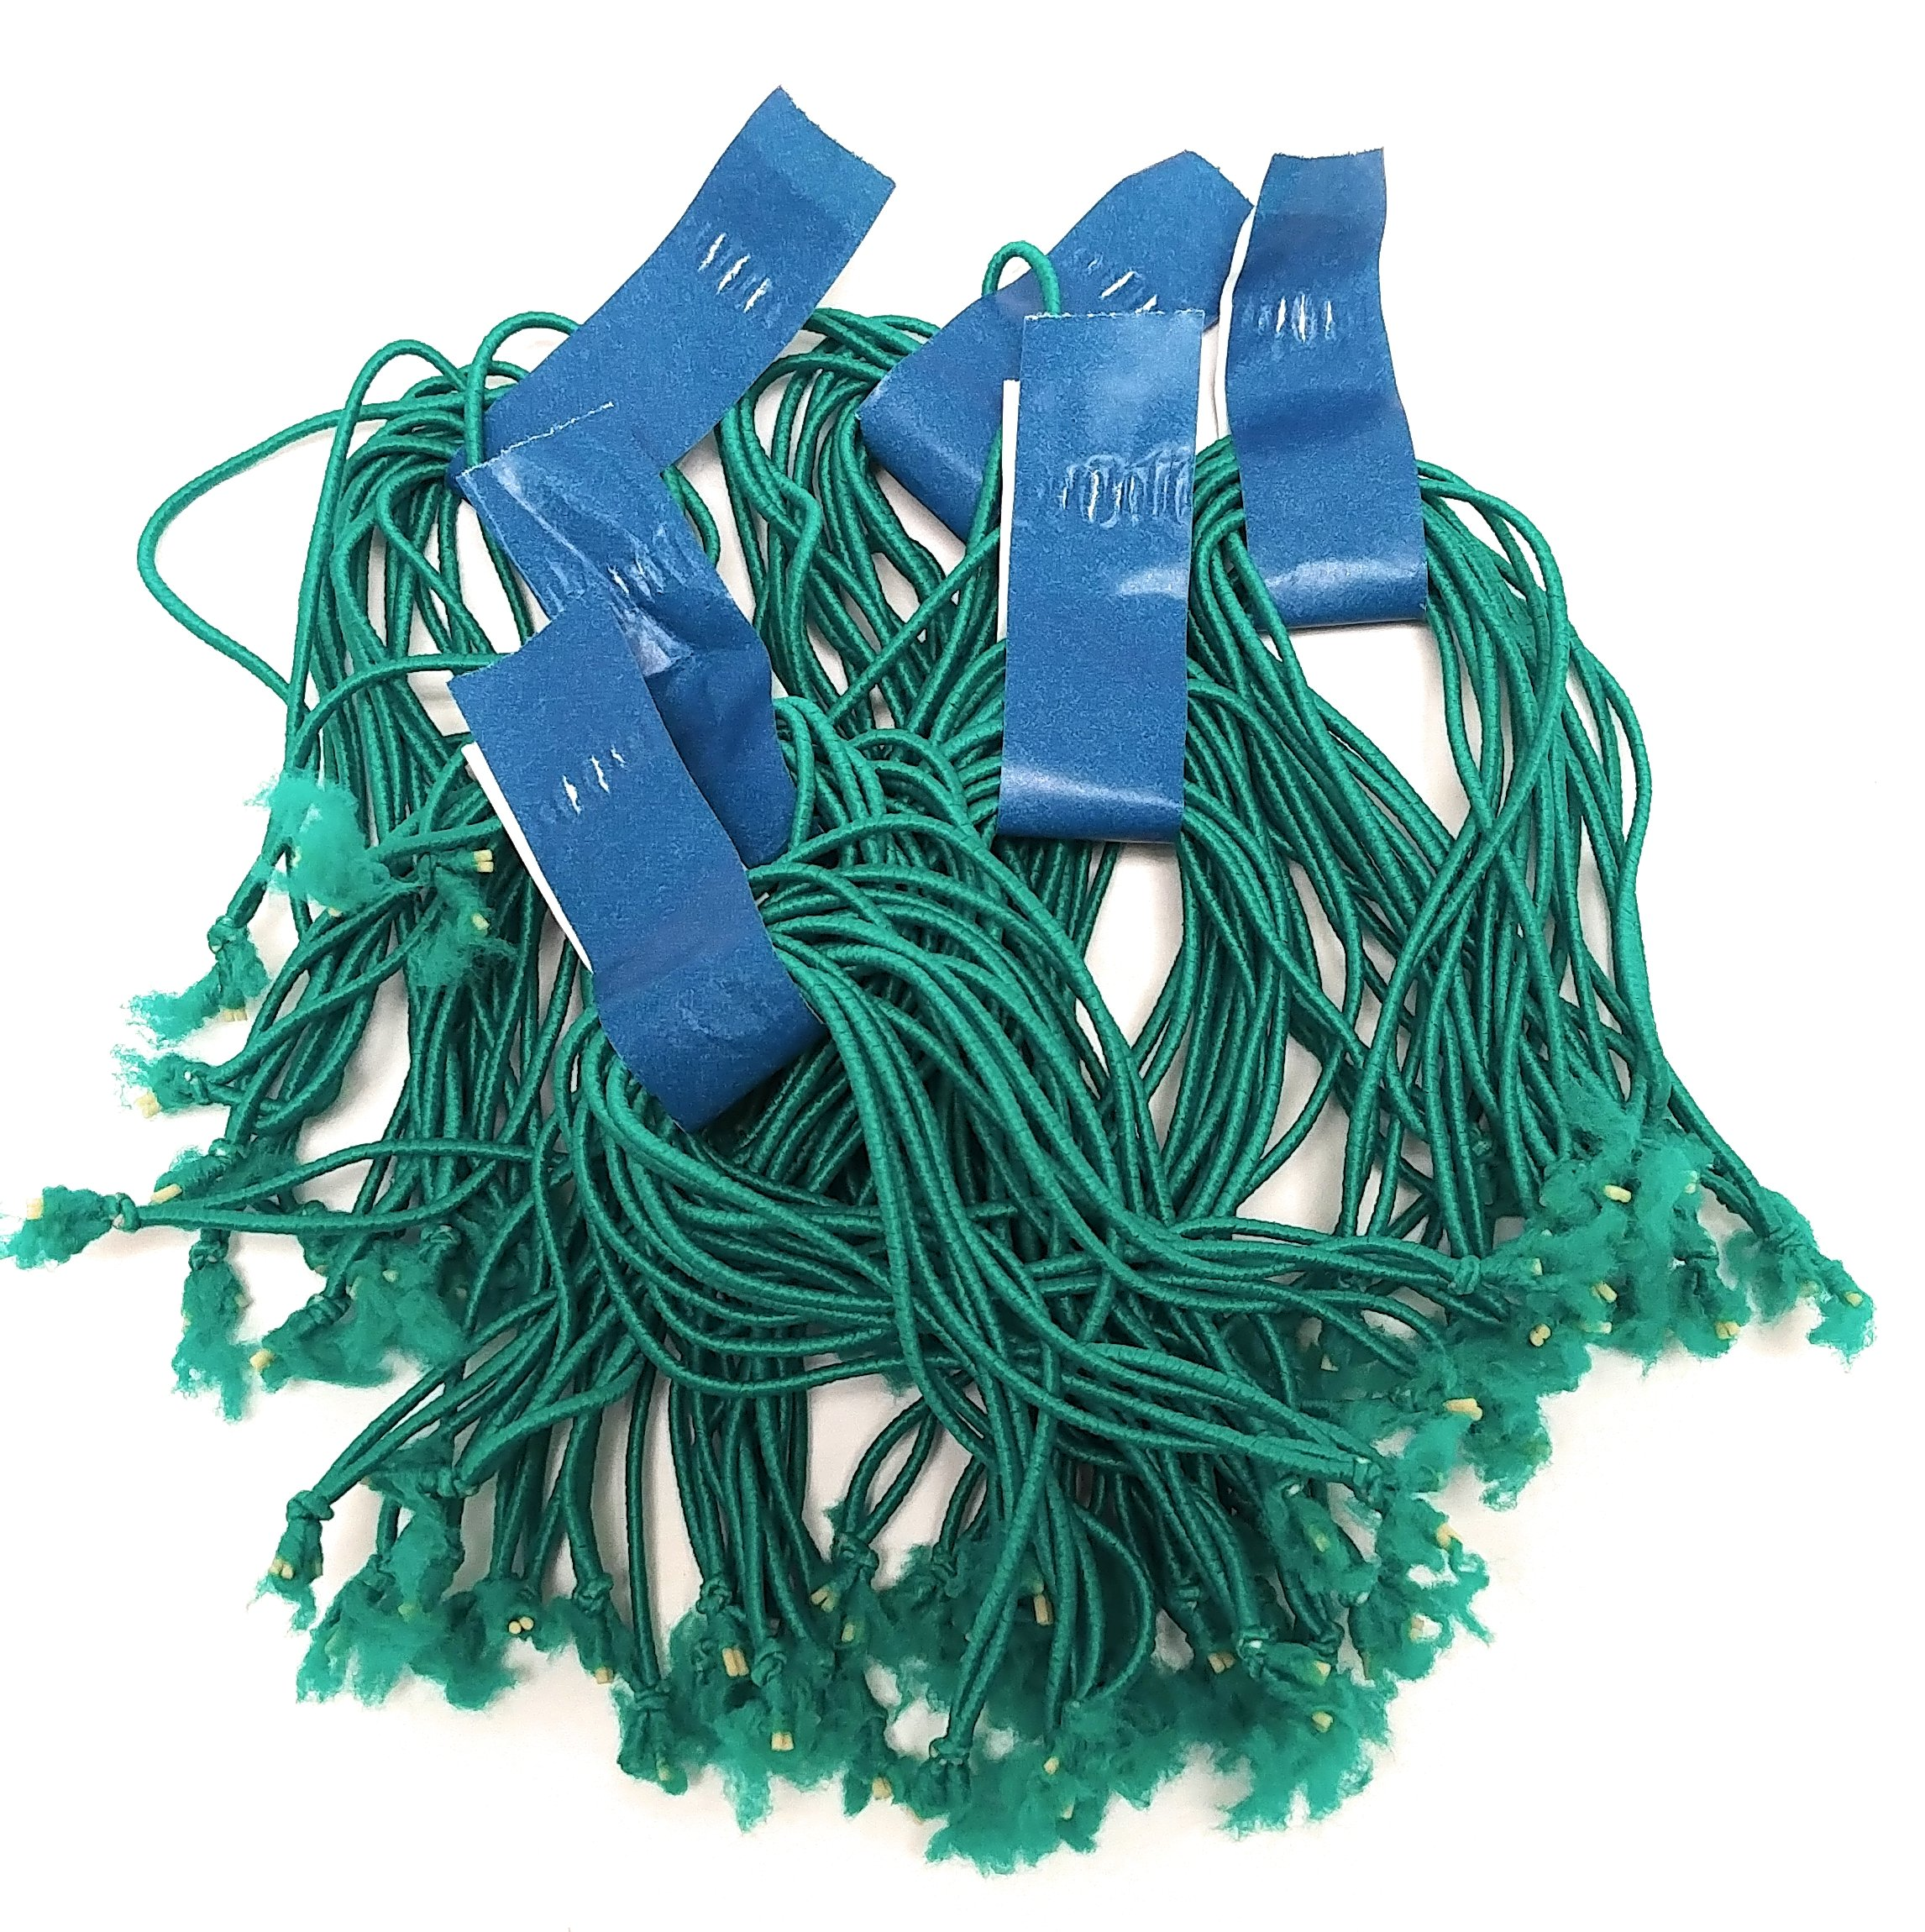 Clucker-Truss Elastic Gourmet Trussing Strings; 5 Inch Green; Bulk bag of 3,750 Ties (250 Bundles of 15/Bundle)